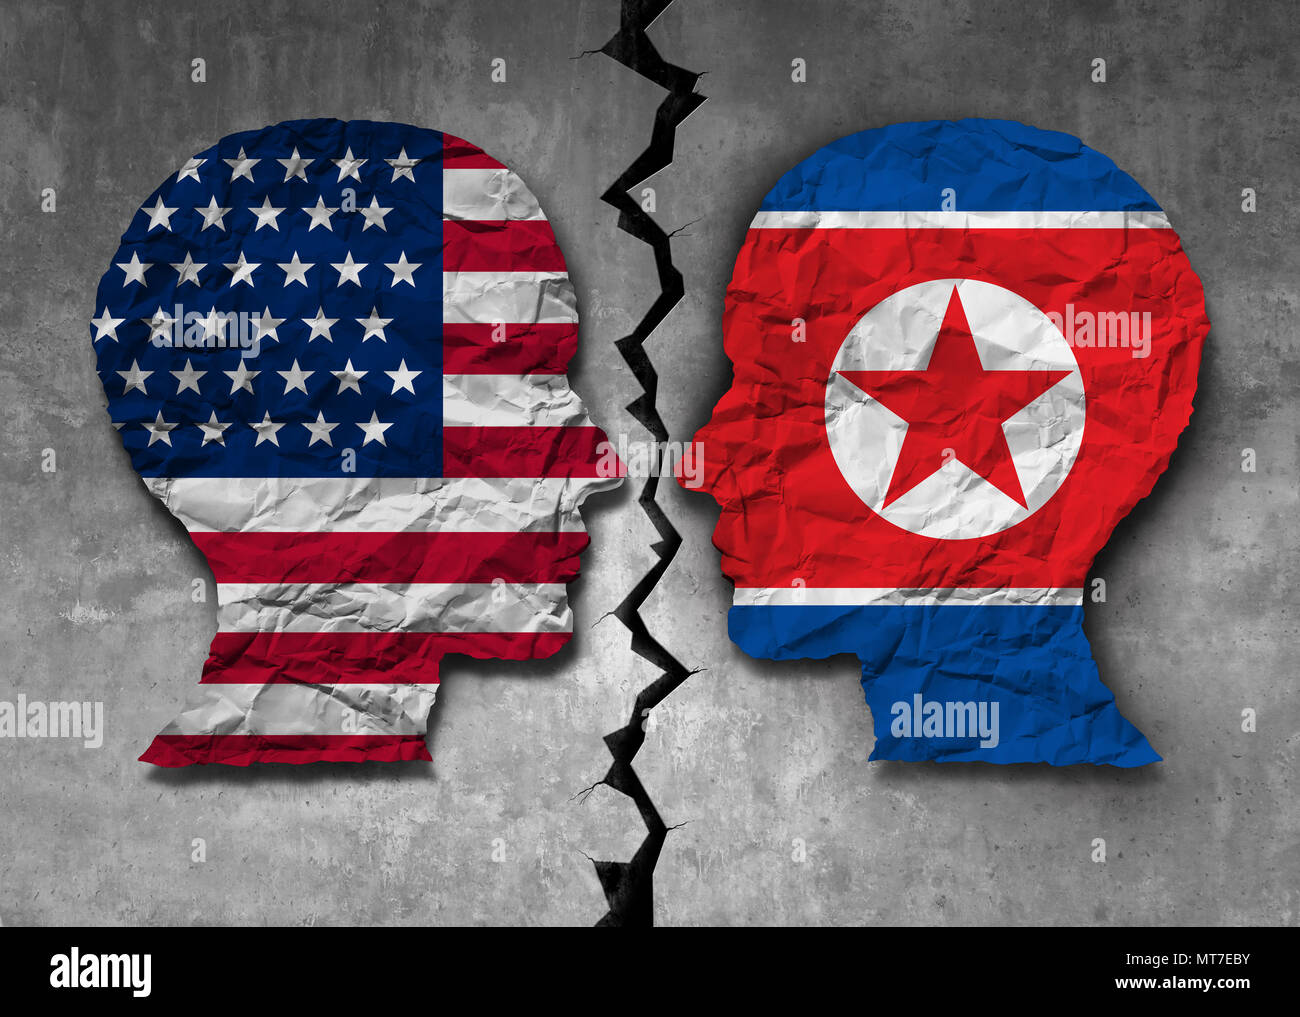 North Korean American challenge and North Korea United States problem diplomacy meeting between pyongyang and washington as an east asian. - Stock Image